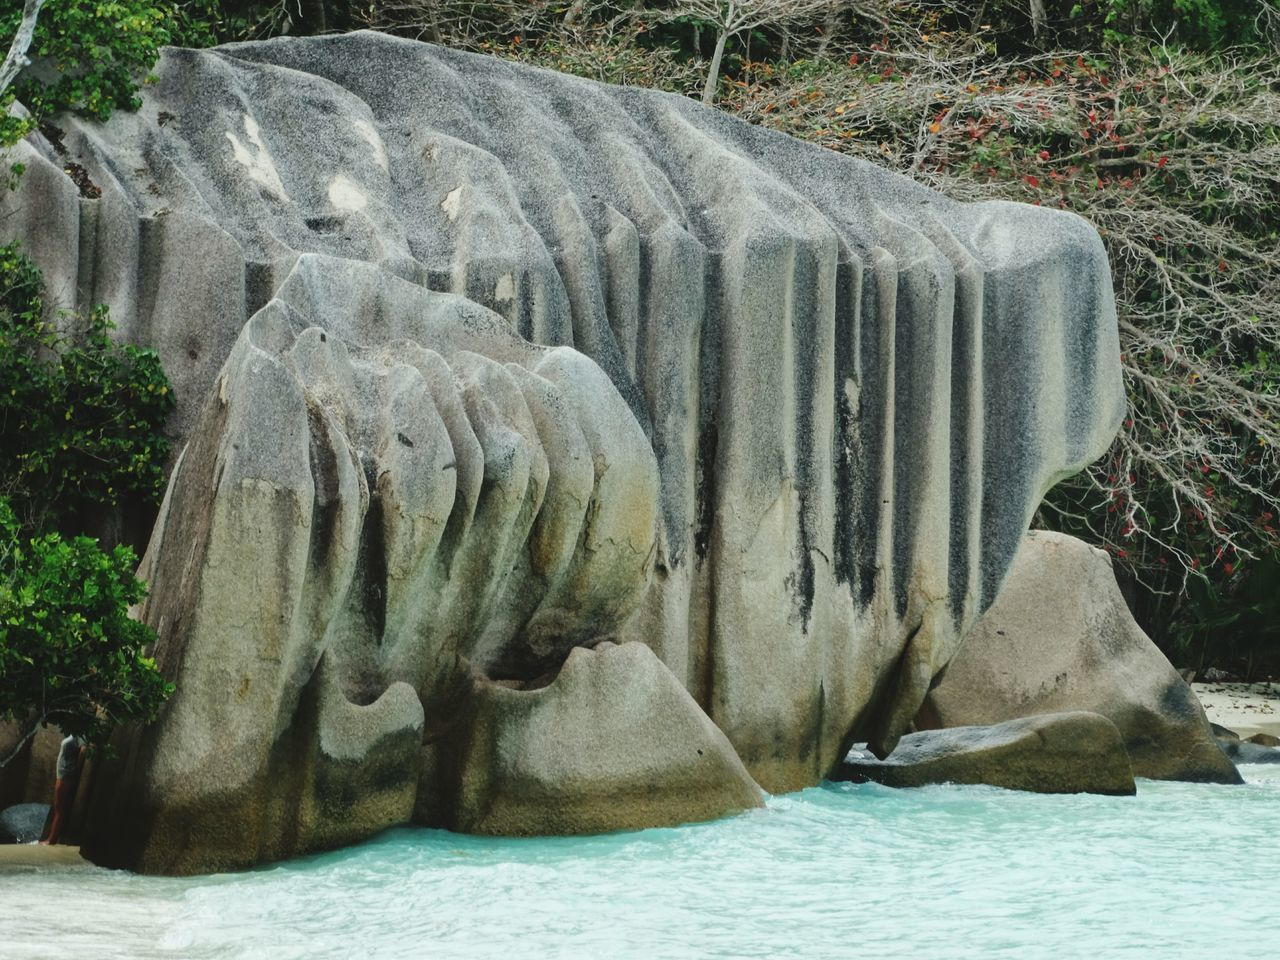 Nature No People Day Outdoors Beauty In Nature Water Rock Formation Rocks In Water Indian Ocean Tropical Paradise Seychelles Islands La Digue Seychelles Cliff Beauty In Nature Rock - Object Island Tropical Climate